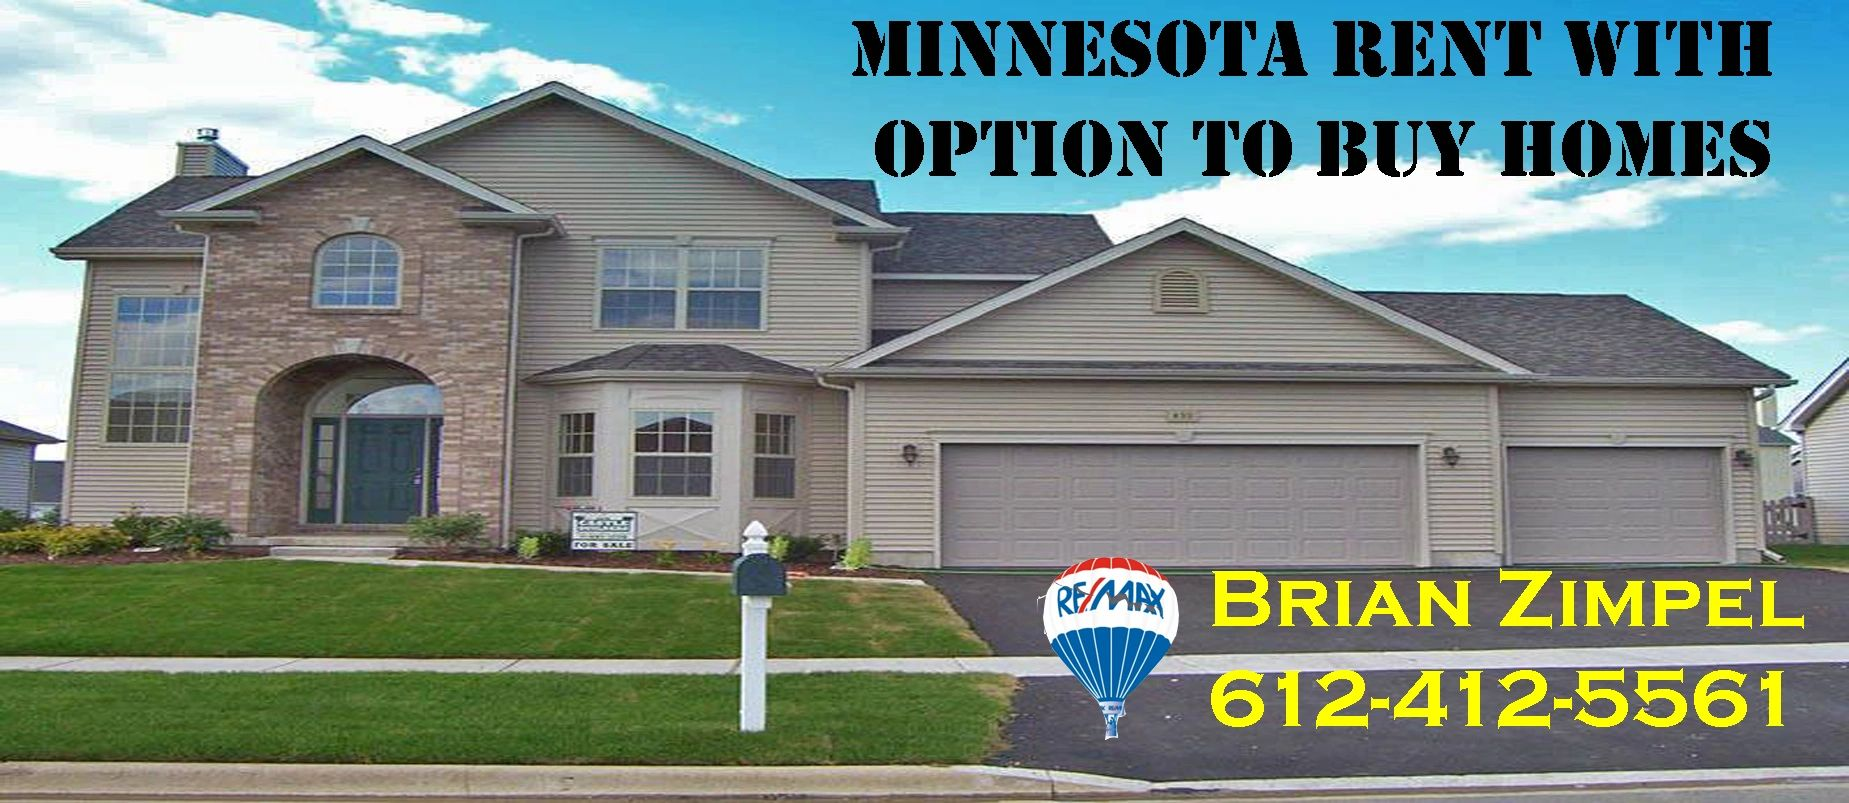 Brilliant Rent Lease To Own Minnesota Homes Rent To Own Minnesota Download Free Architecture Designs Sospemadebymaigaardcom